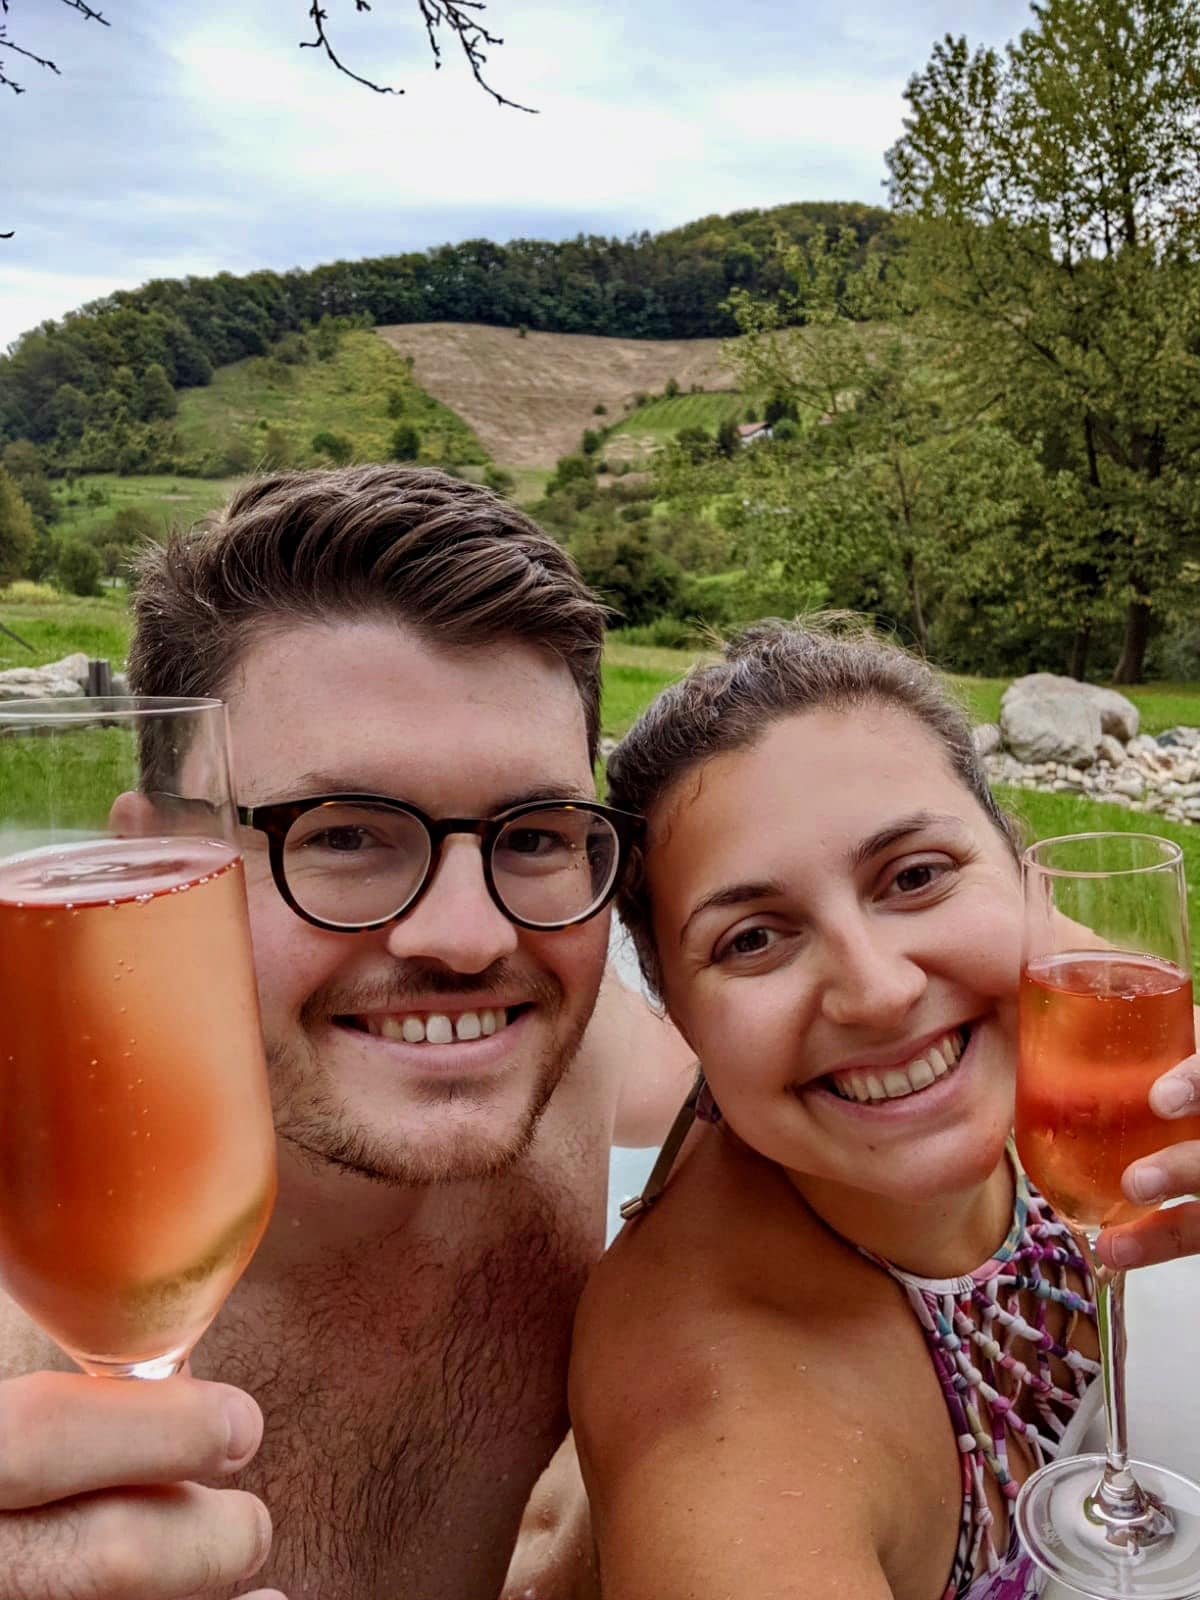 Glamping in Slovenia: A couple holding a glass of rose sparkling wine up and smiling at the camera, with vineyards in the background